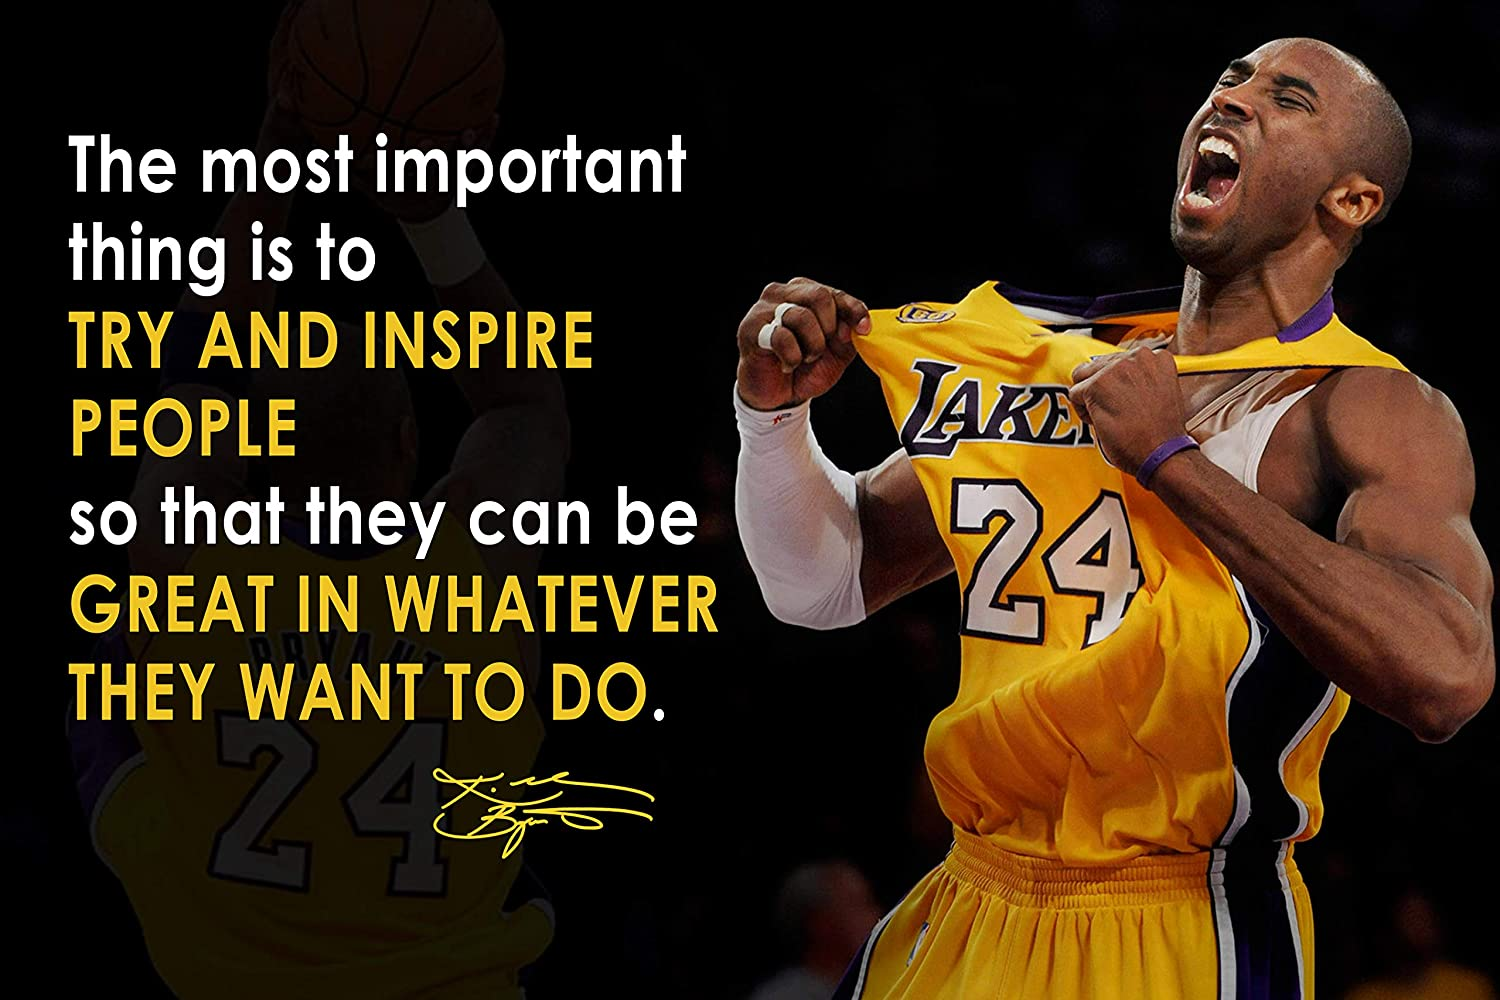 Kobe Bryant Poster Quote Black History Month Posters Los Angeles Lakers Quotes Basketball Sports Decor Coaching Wall Art Growth Mindset Teacher Educational Teaching Quotes Elementary P065